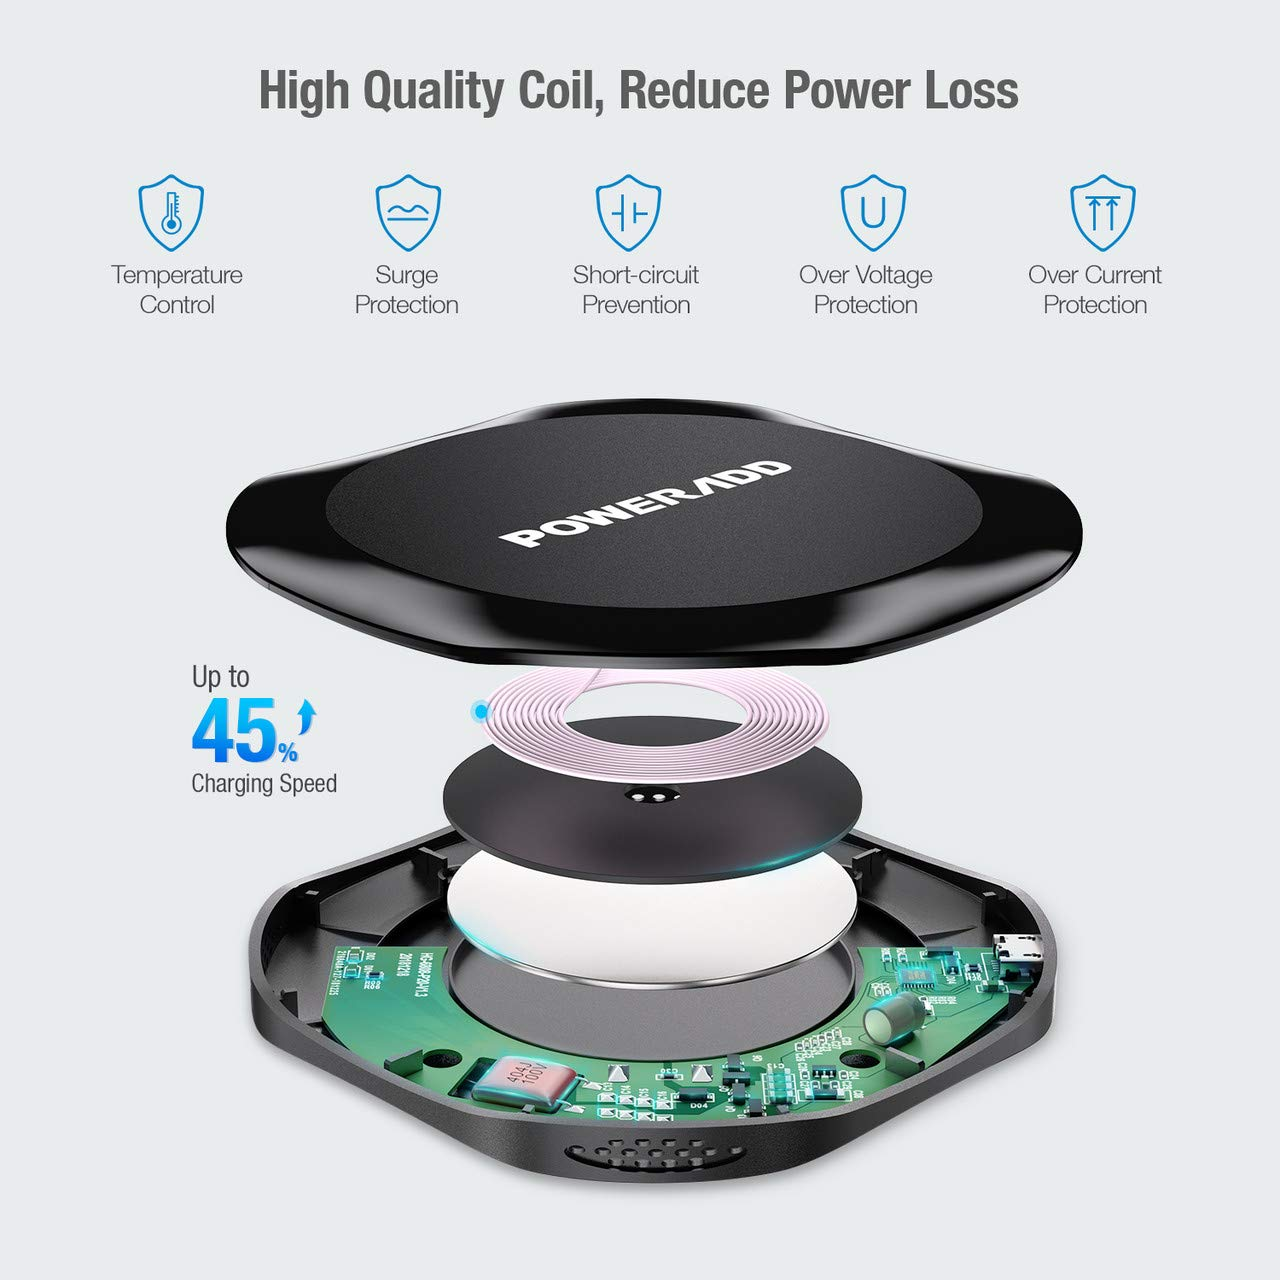 Poweradd Wireless Charger, 10W 7.5W Qi-Certified Wireless Charger Pad Compatible with iPhone XS/XS Max/XR/X/iPhone 8/8 Plus, Galaxy S9/S9+/S8/S8+/S7 and More (No AC Adapter)